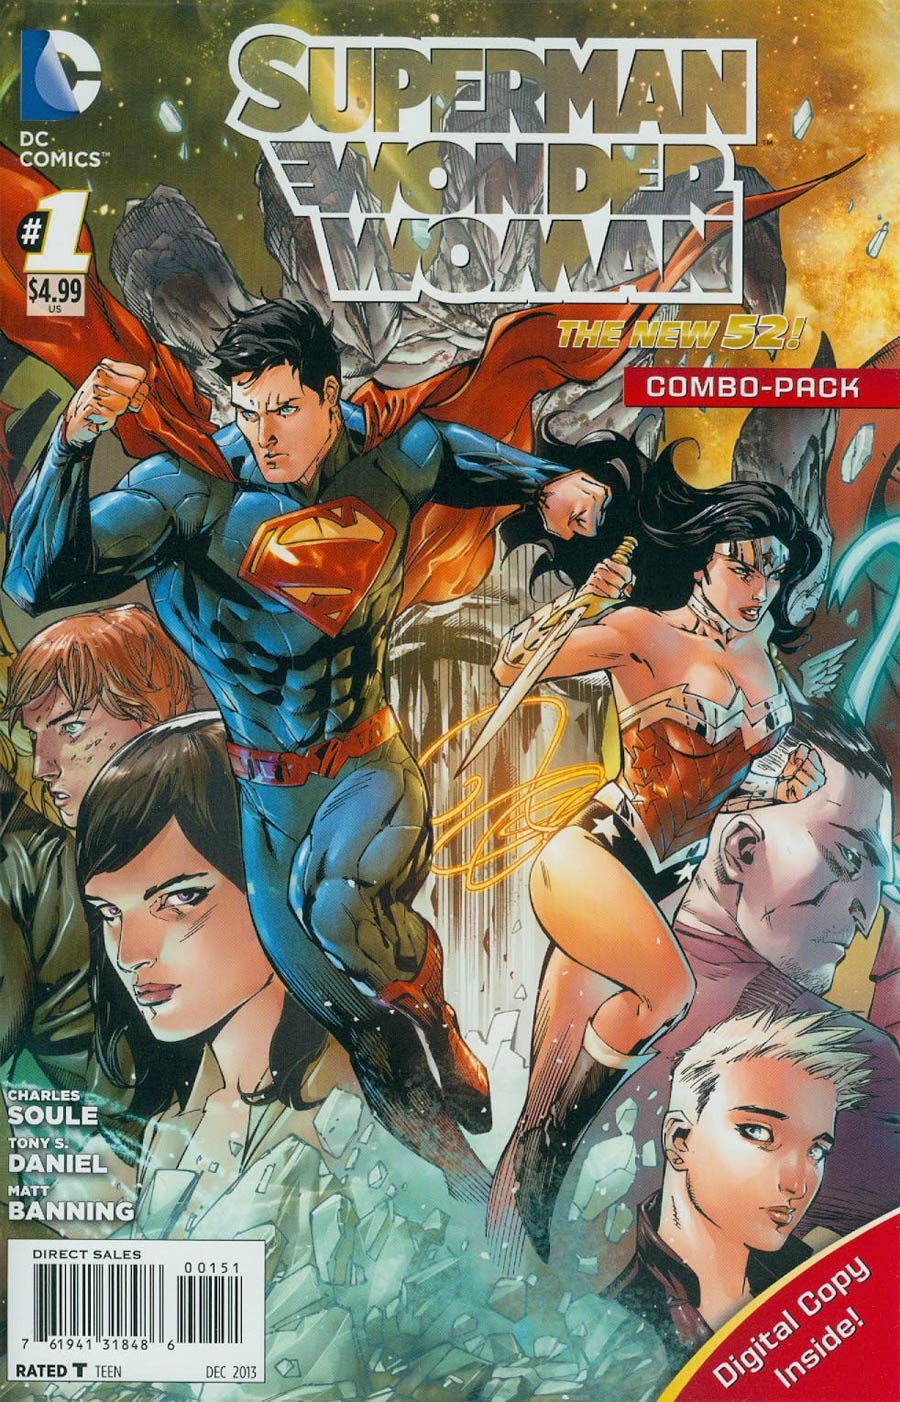 Superman Wonder Woman #1 Cover D Combo Pack Without Polybag